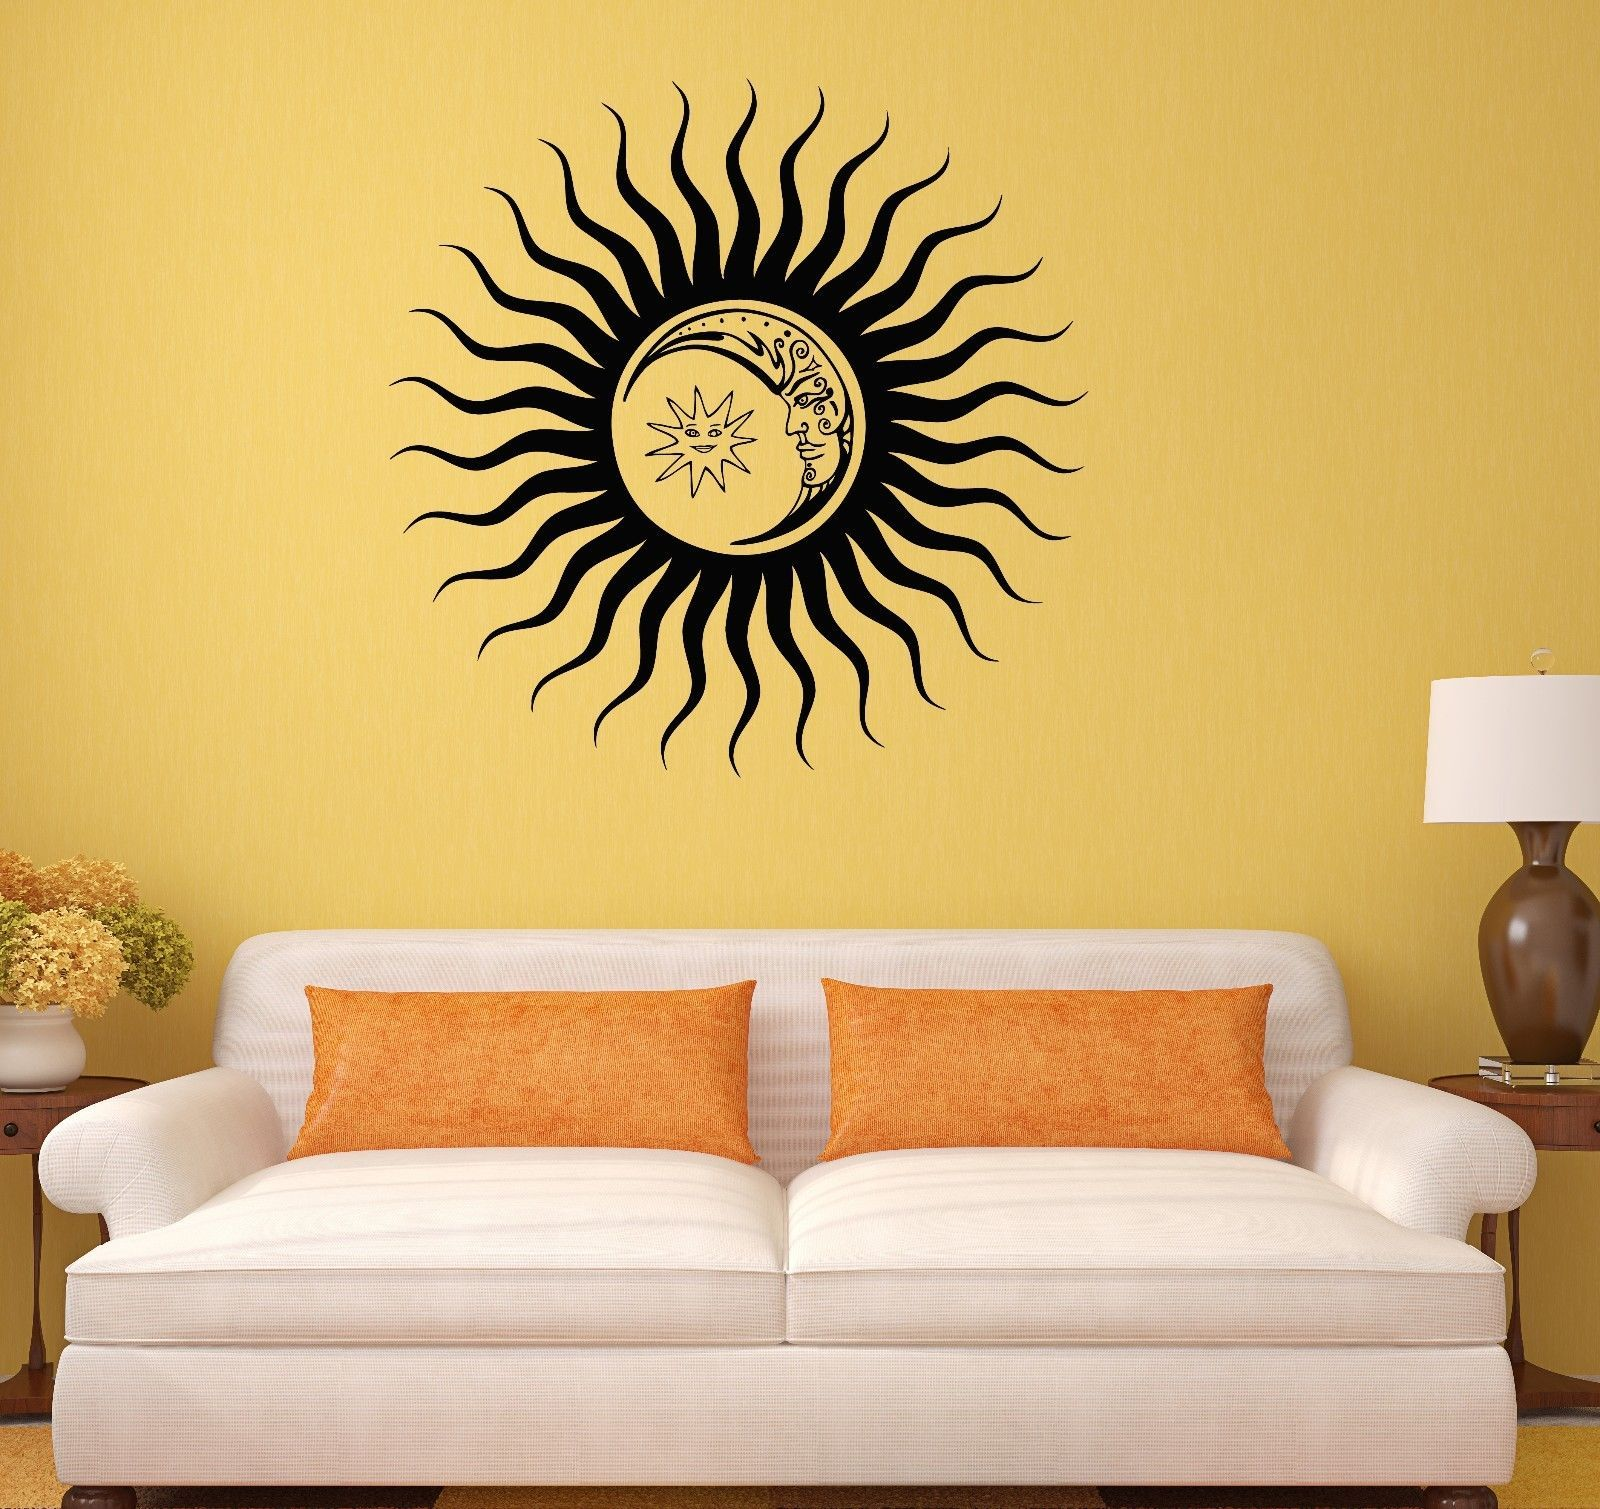 wall decal sun moon art home decoration vinyl stickers decor ig3075 decals stickers vinyl art. Black Bedroom Furniture Sets. Home Design Ideas